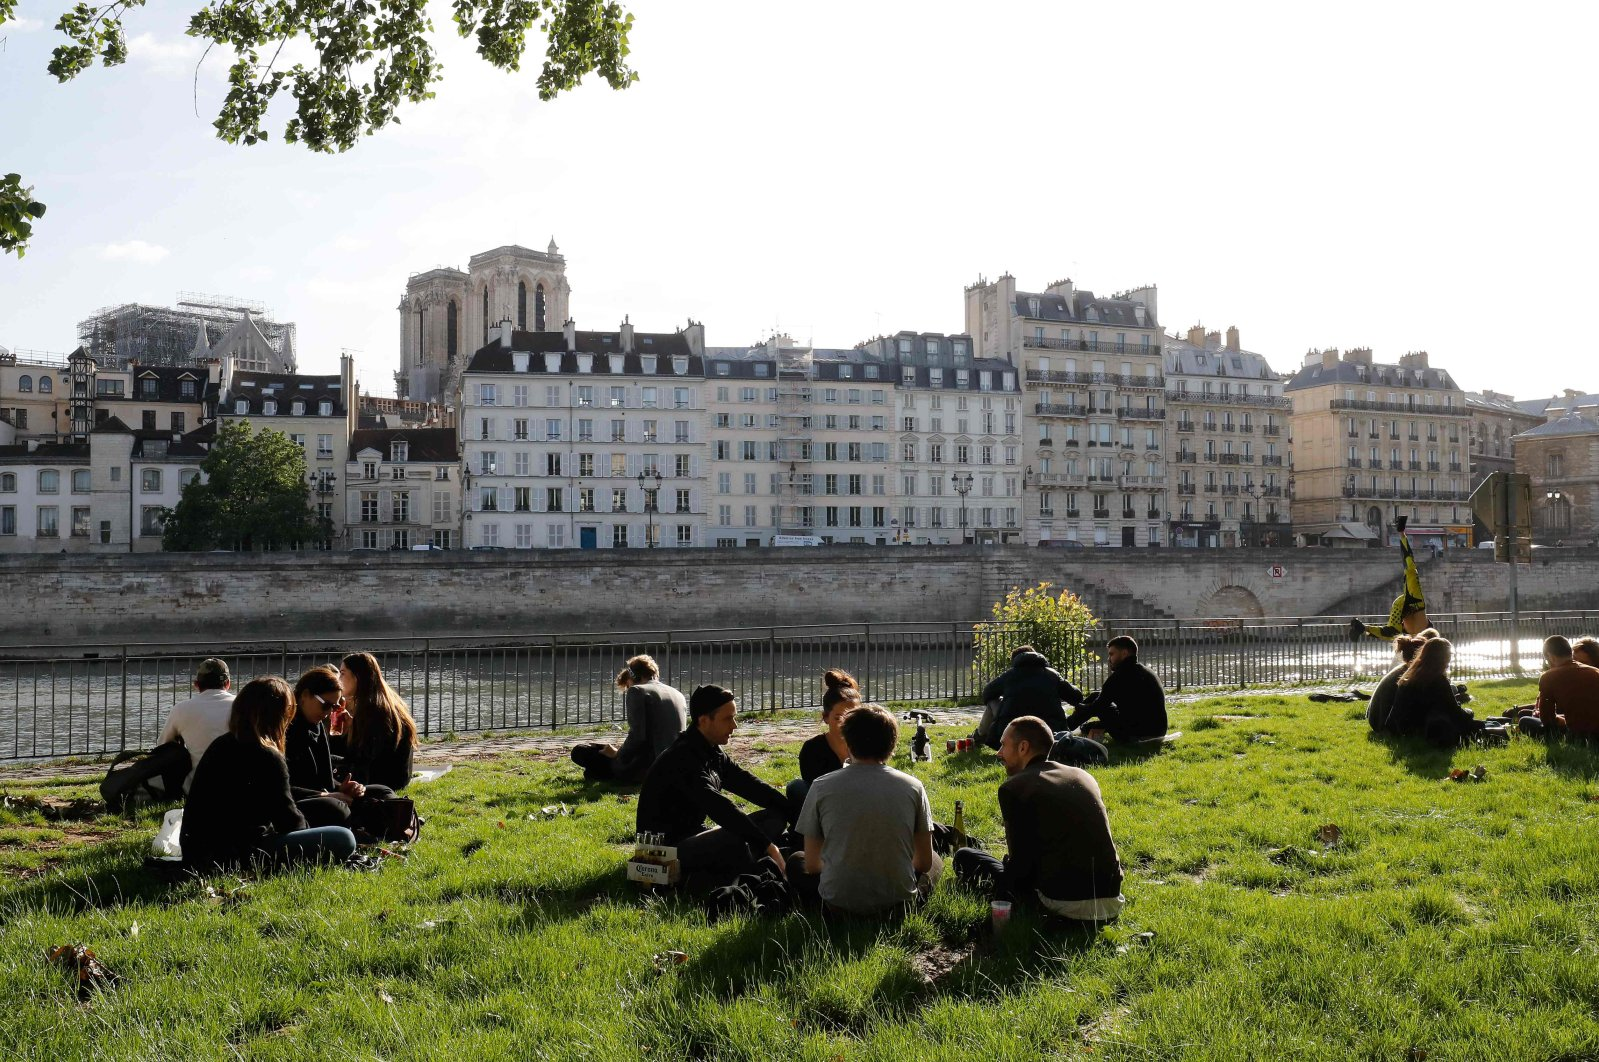 People gather along banks of the Seine river in Paris on the first day of France's easing of lockdown measures in place for 55 days to curb the spread of the coronavirus, May 11, 2020. (AFP Photo)